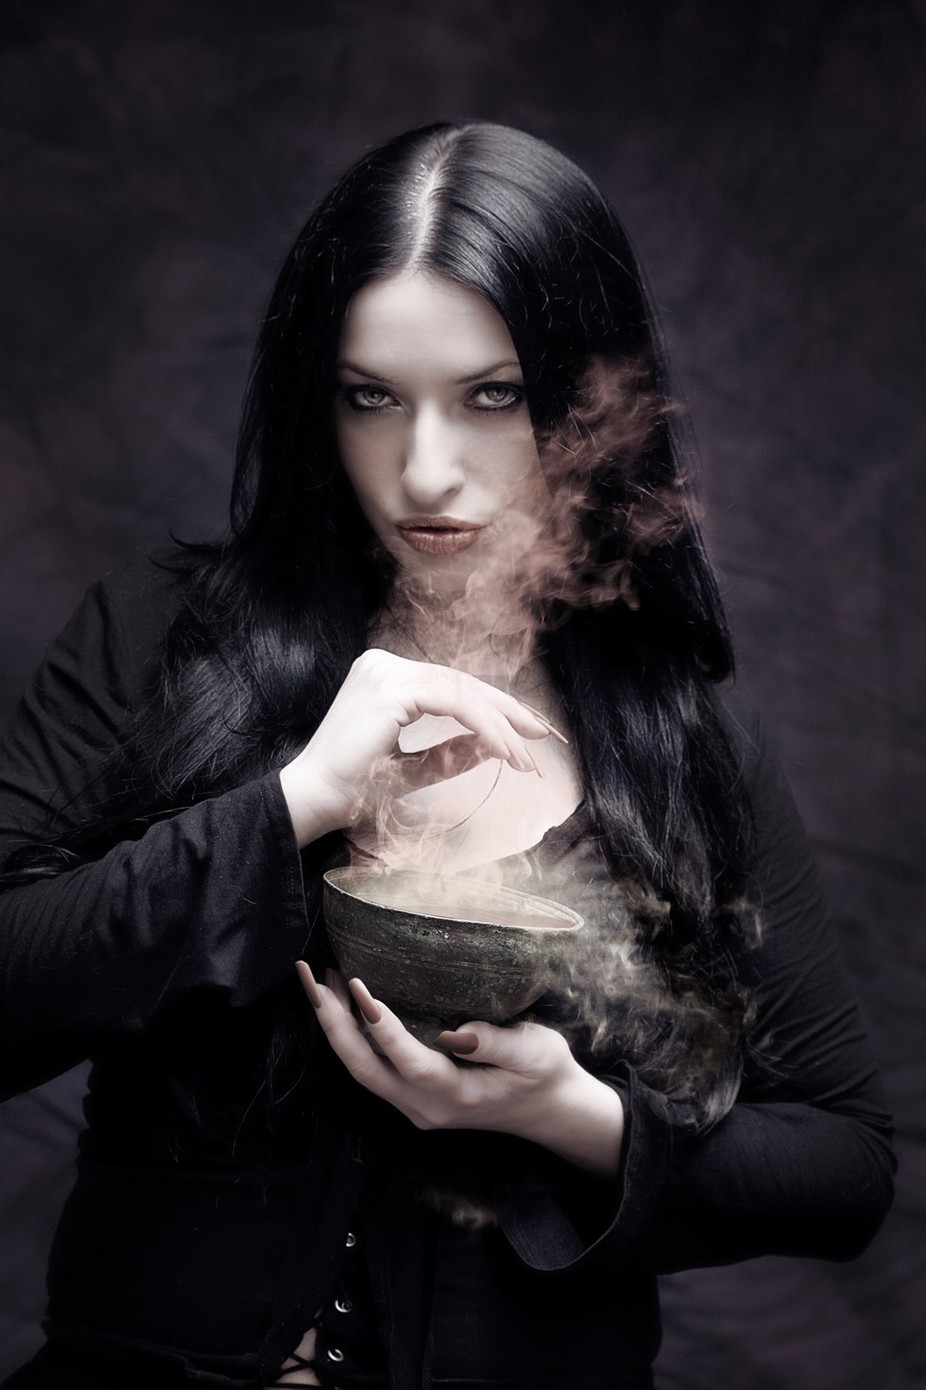 Lilith by georgyde - Visual Poetry Photo Contest